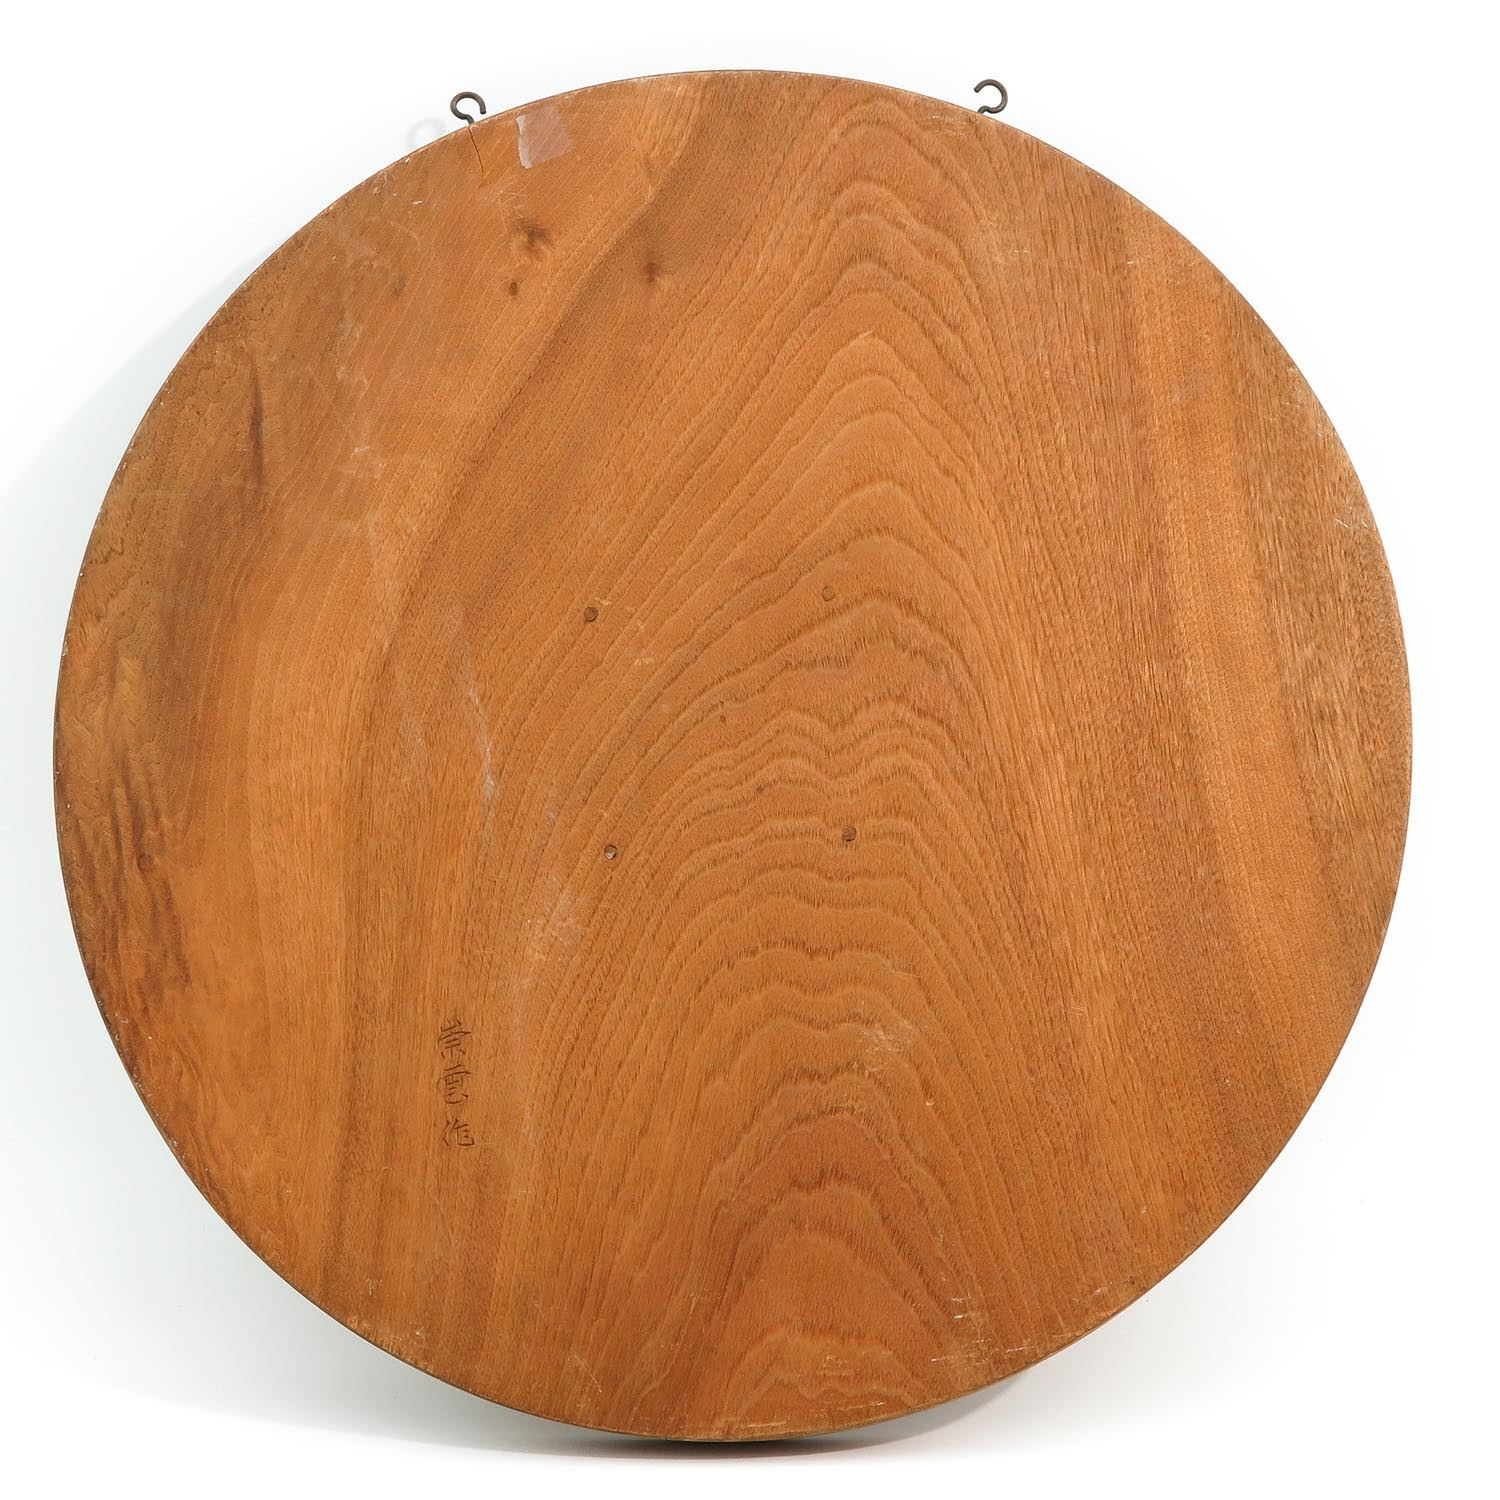 A Round Carved Wood Panel - Image 2 of 5